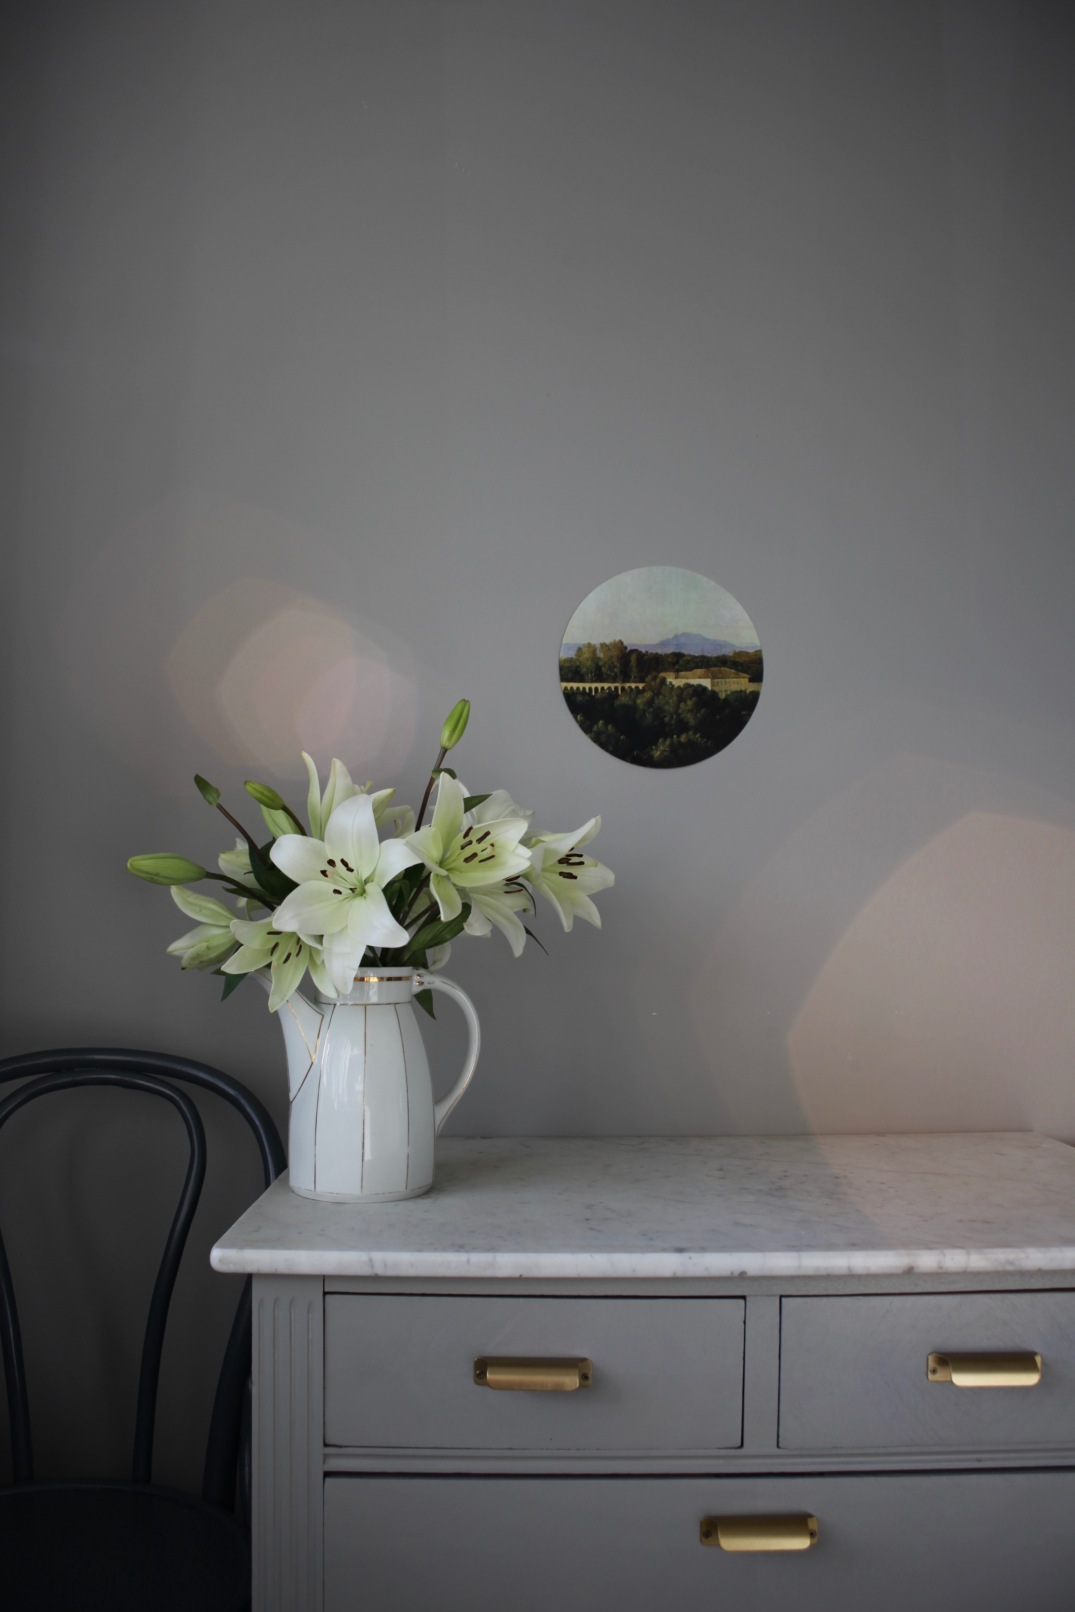 white lilies, grey kitchen details with sun bokeh via anastasiabenko.comkitchen details in the sun via Anastasia Benko